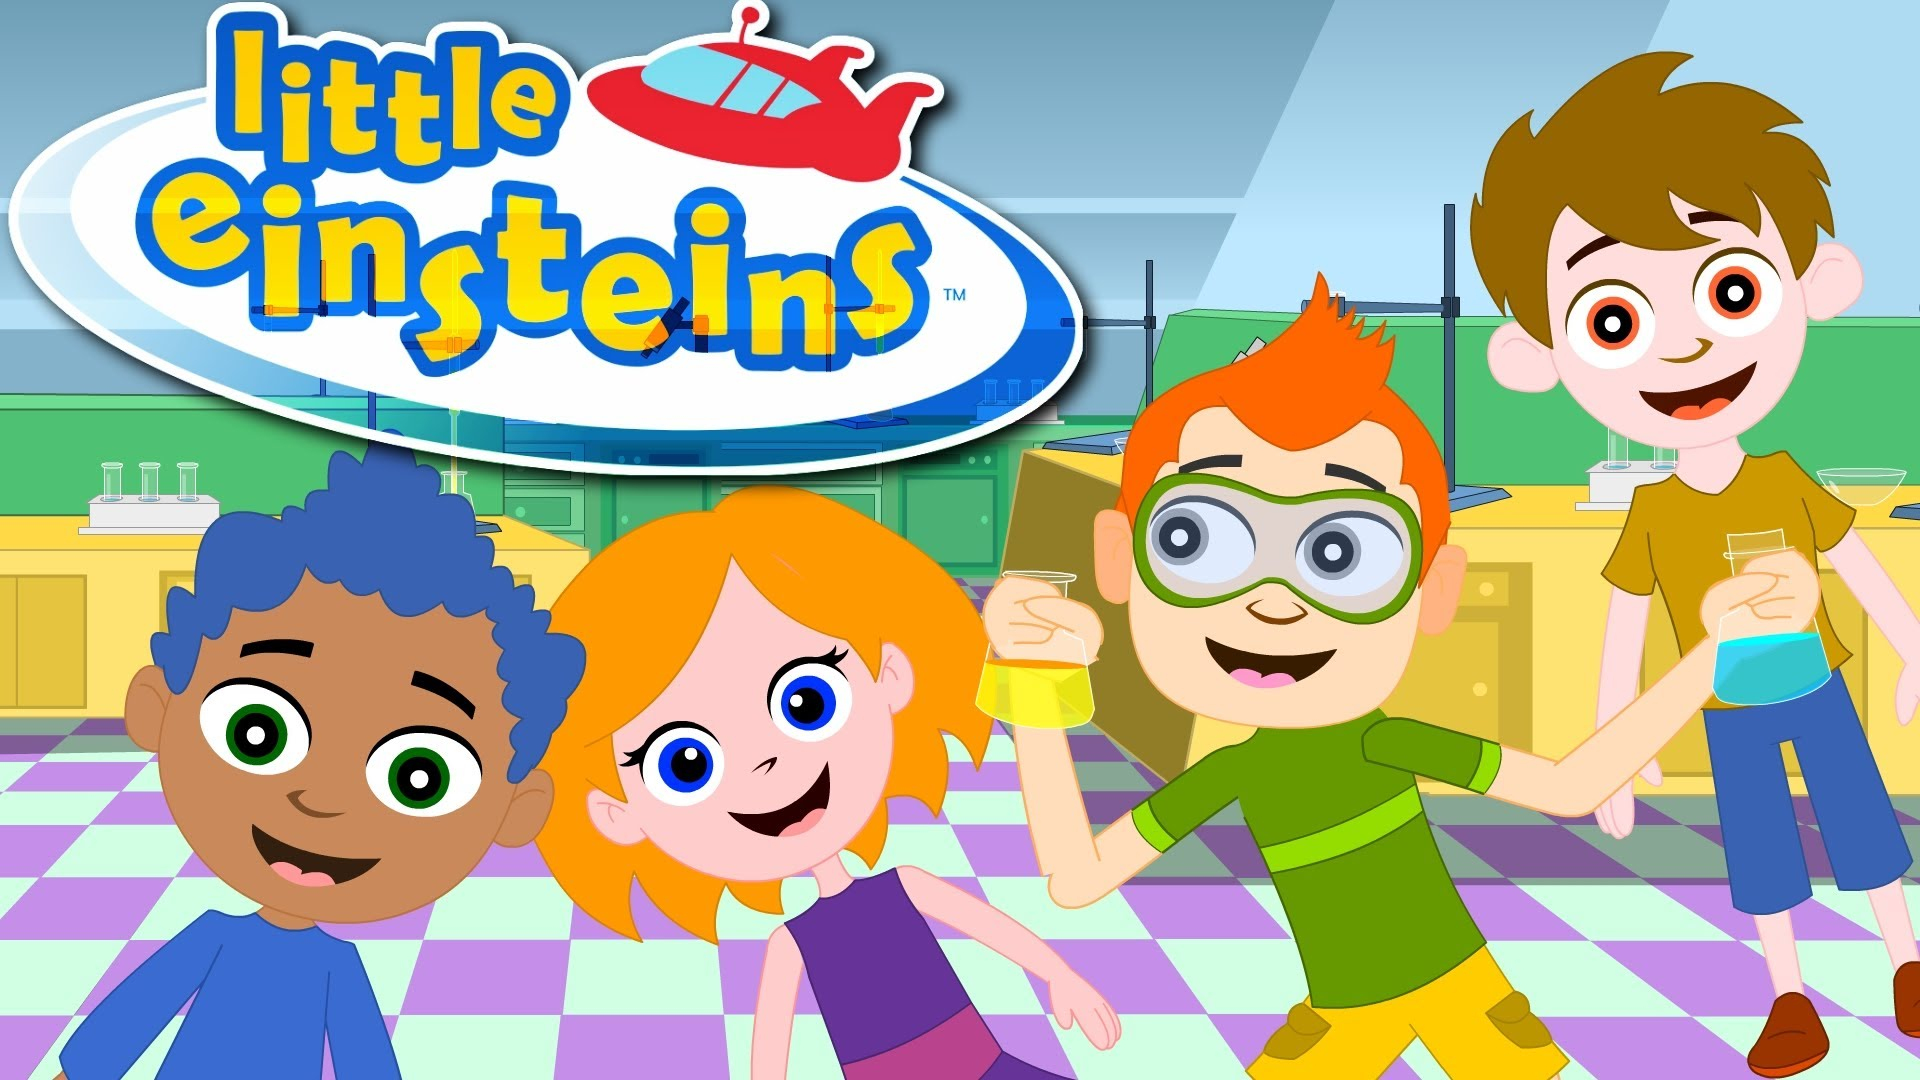 Little Einsteins Wallpaper